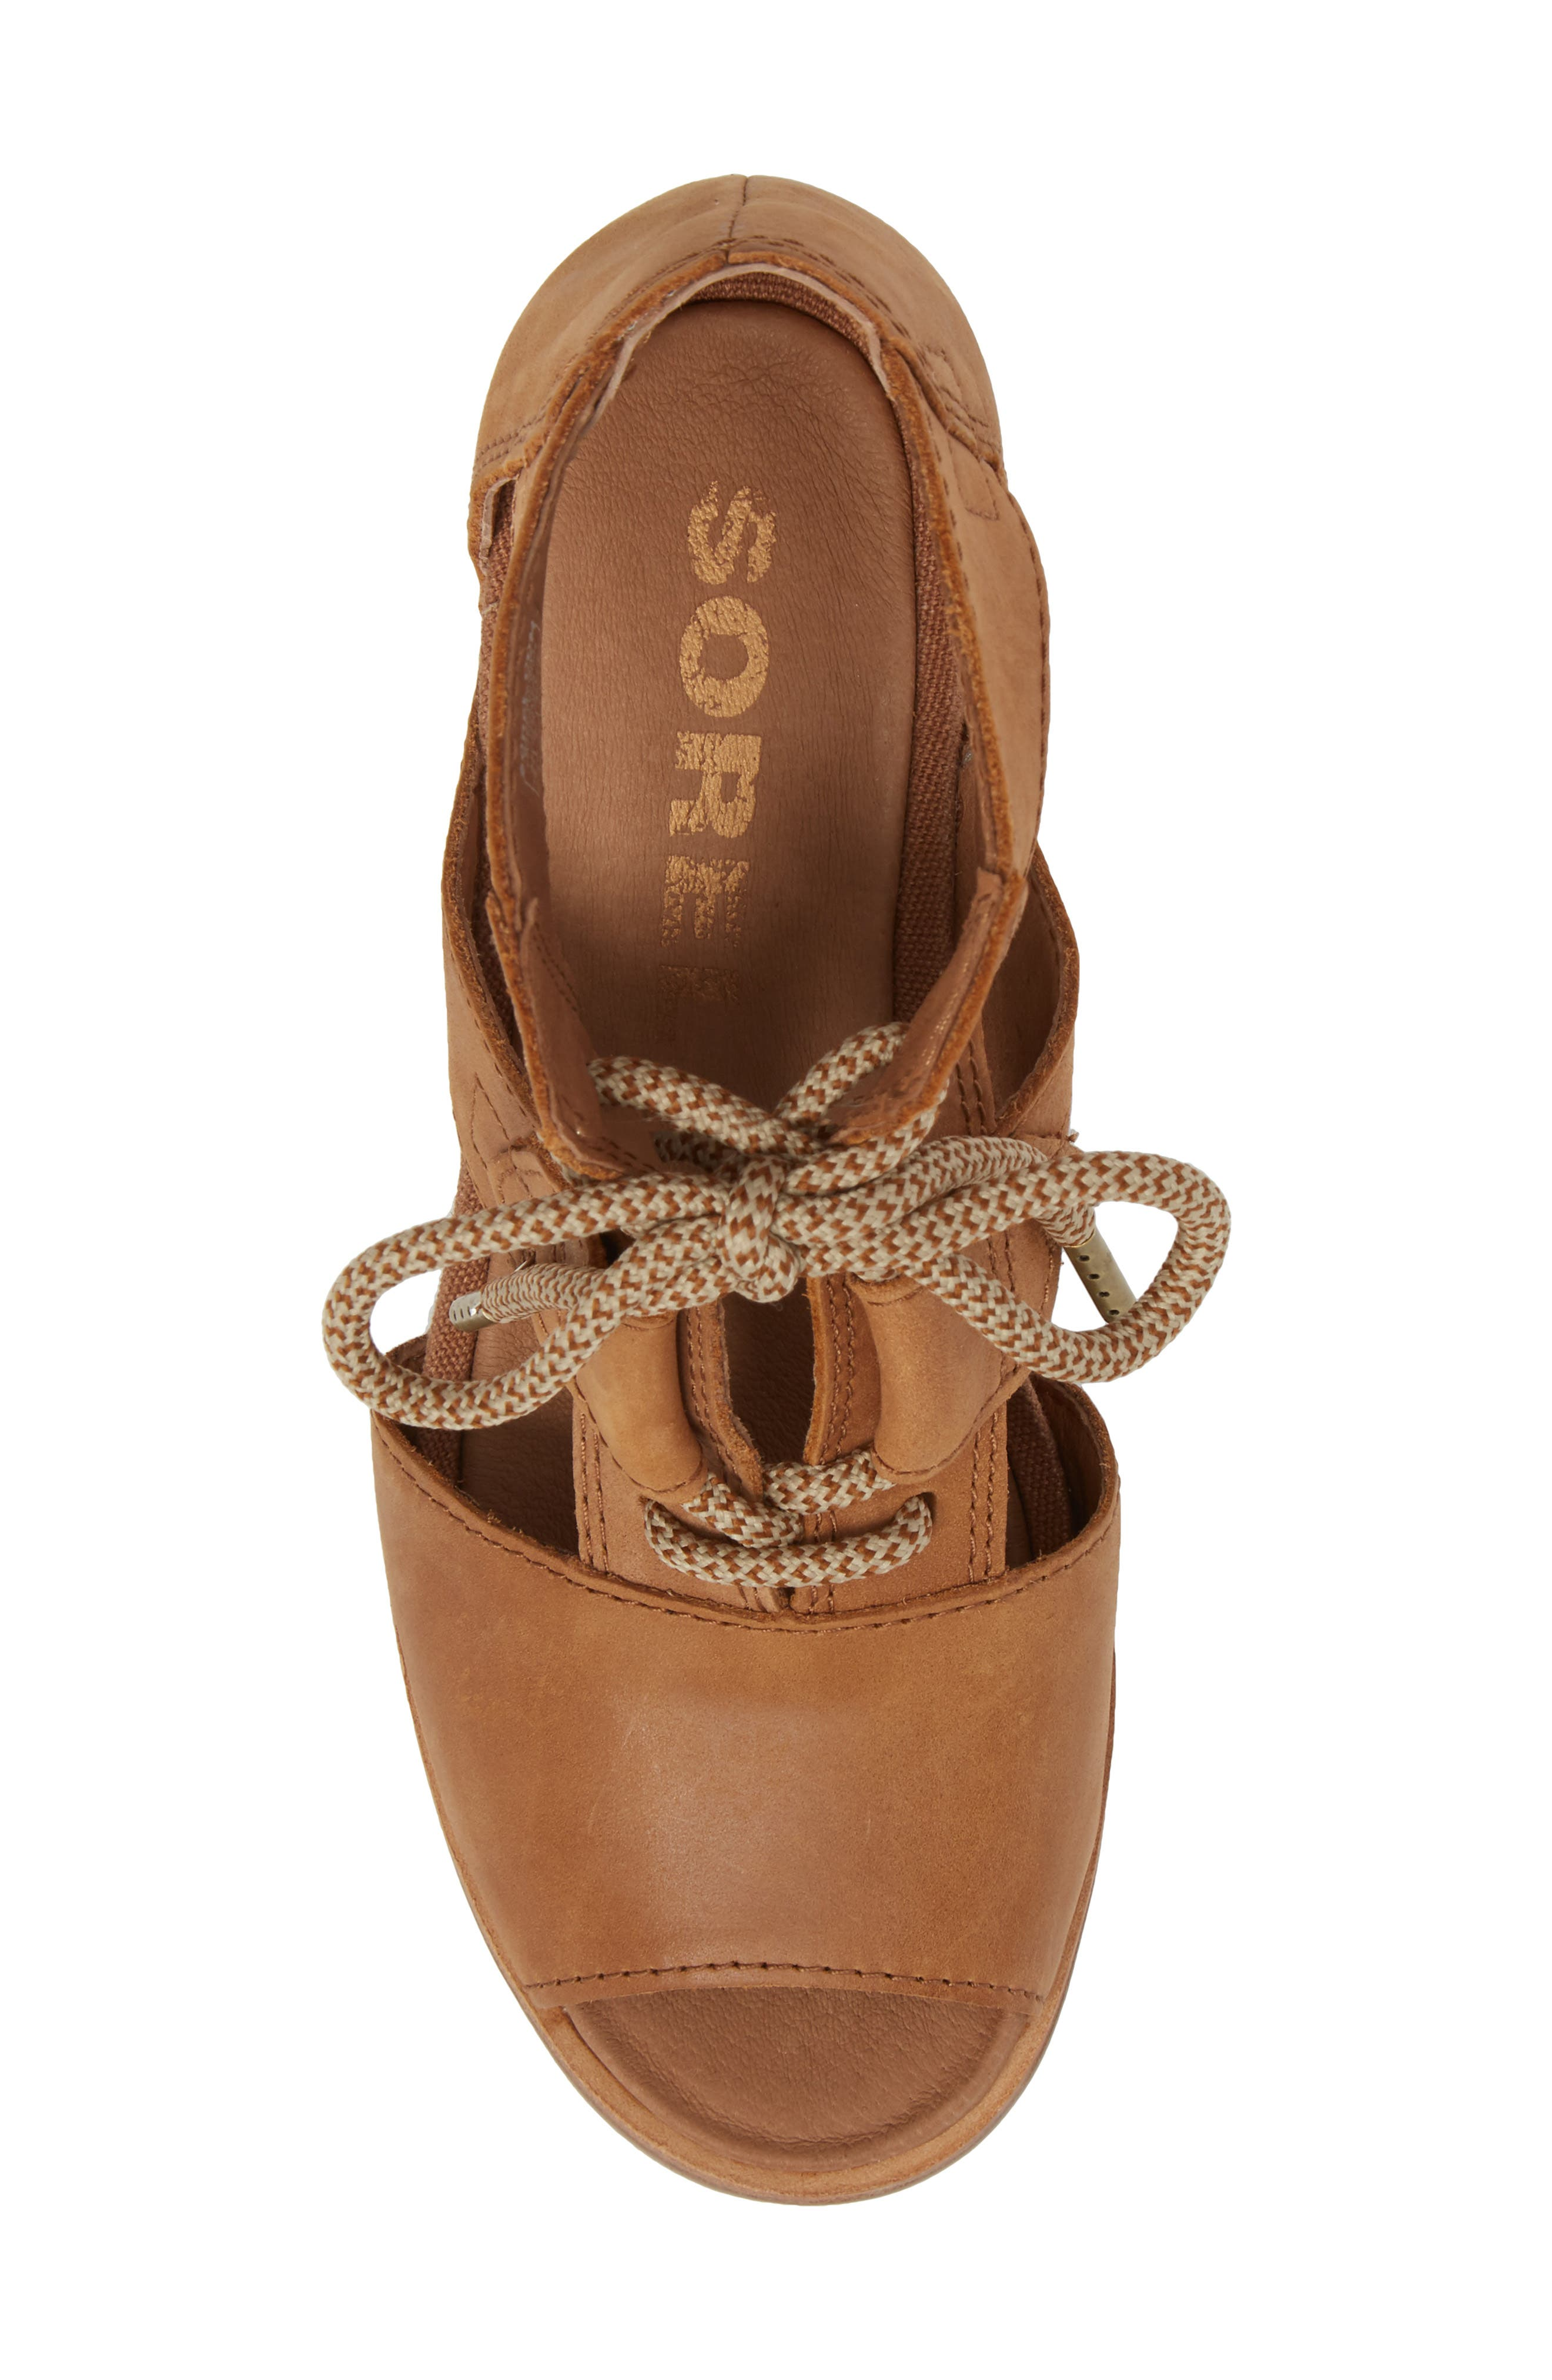 'Joanie' Cage Sandal,                             Alternate thumbnail 4, color,                             Camel Brown